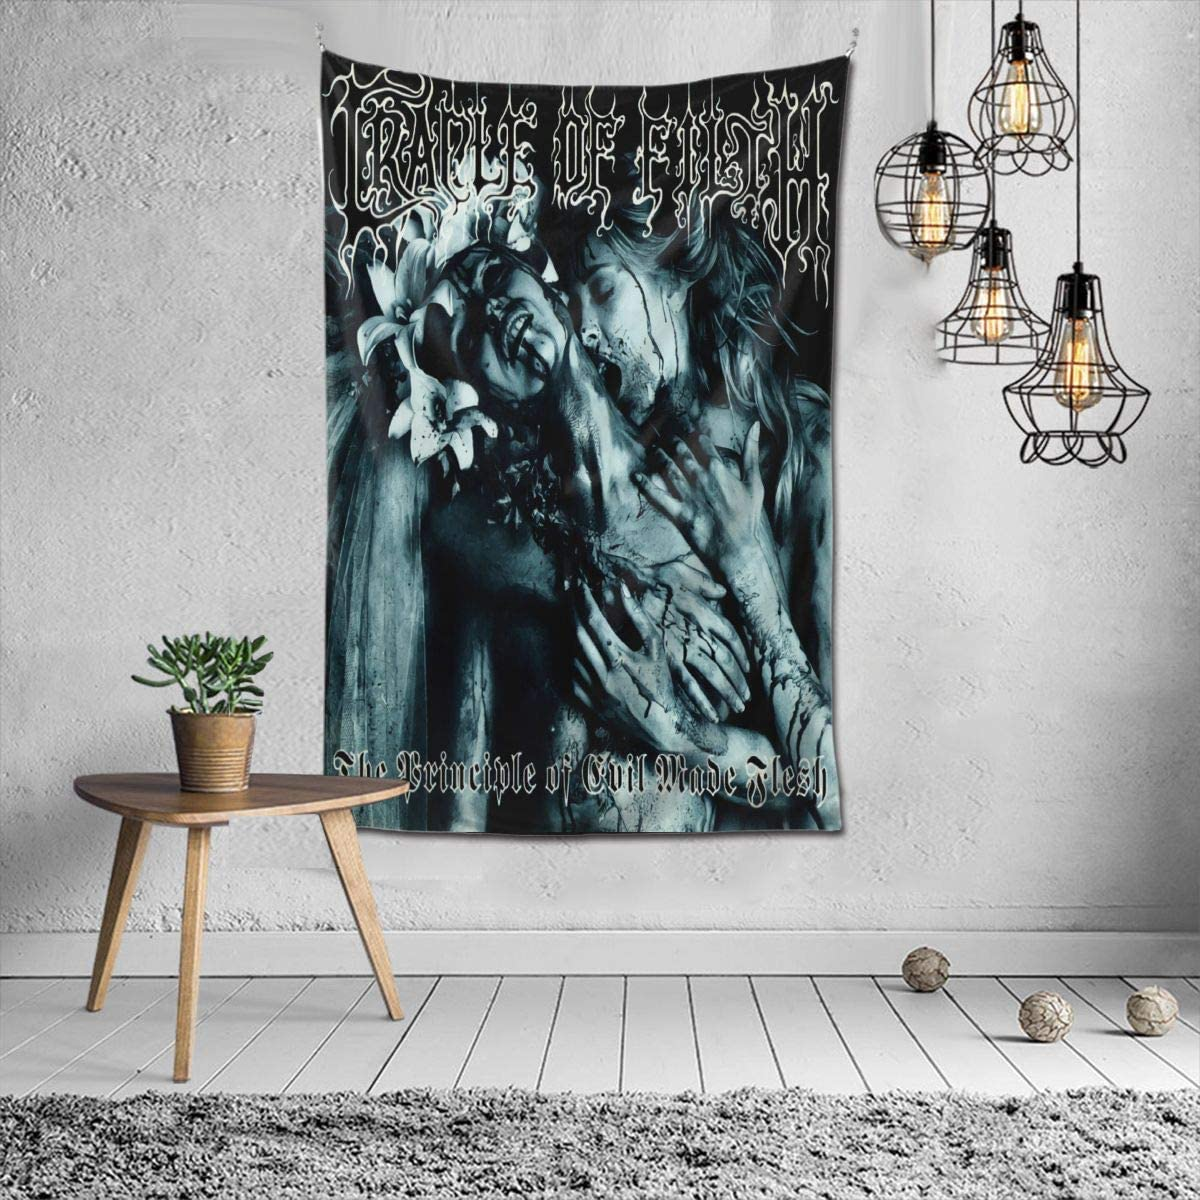 baodan Cradle of Filth Tapestry Mural Wall Hanging Home Mural Decor Blanket Art Decor for Living Room Bedroom 60 X40 Inch - -Fashion Black